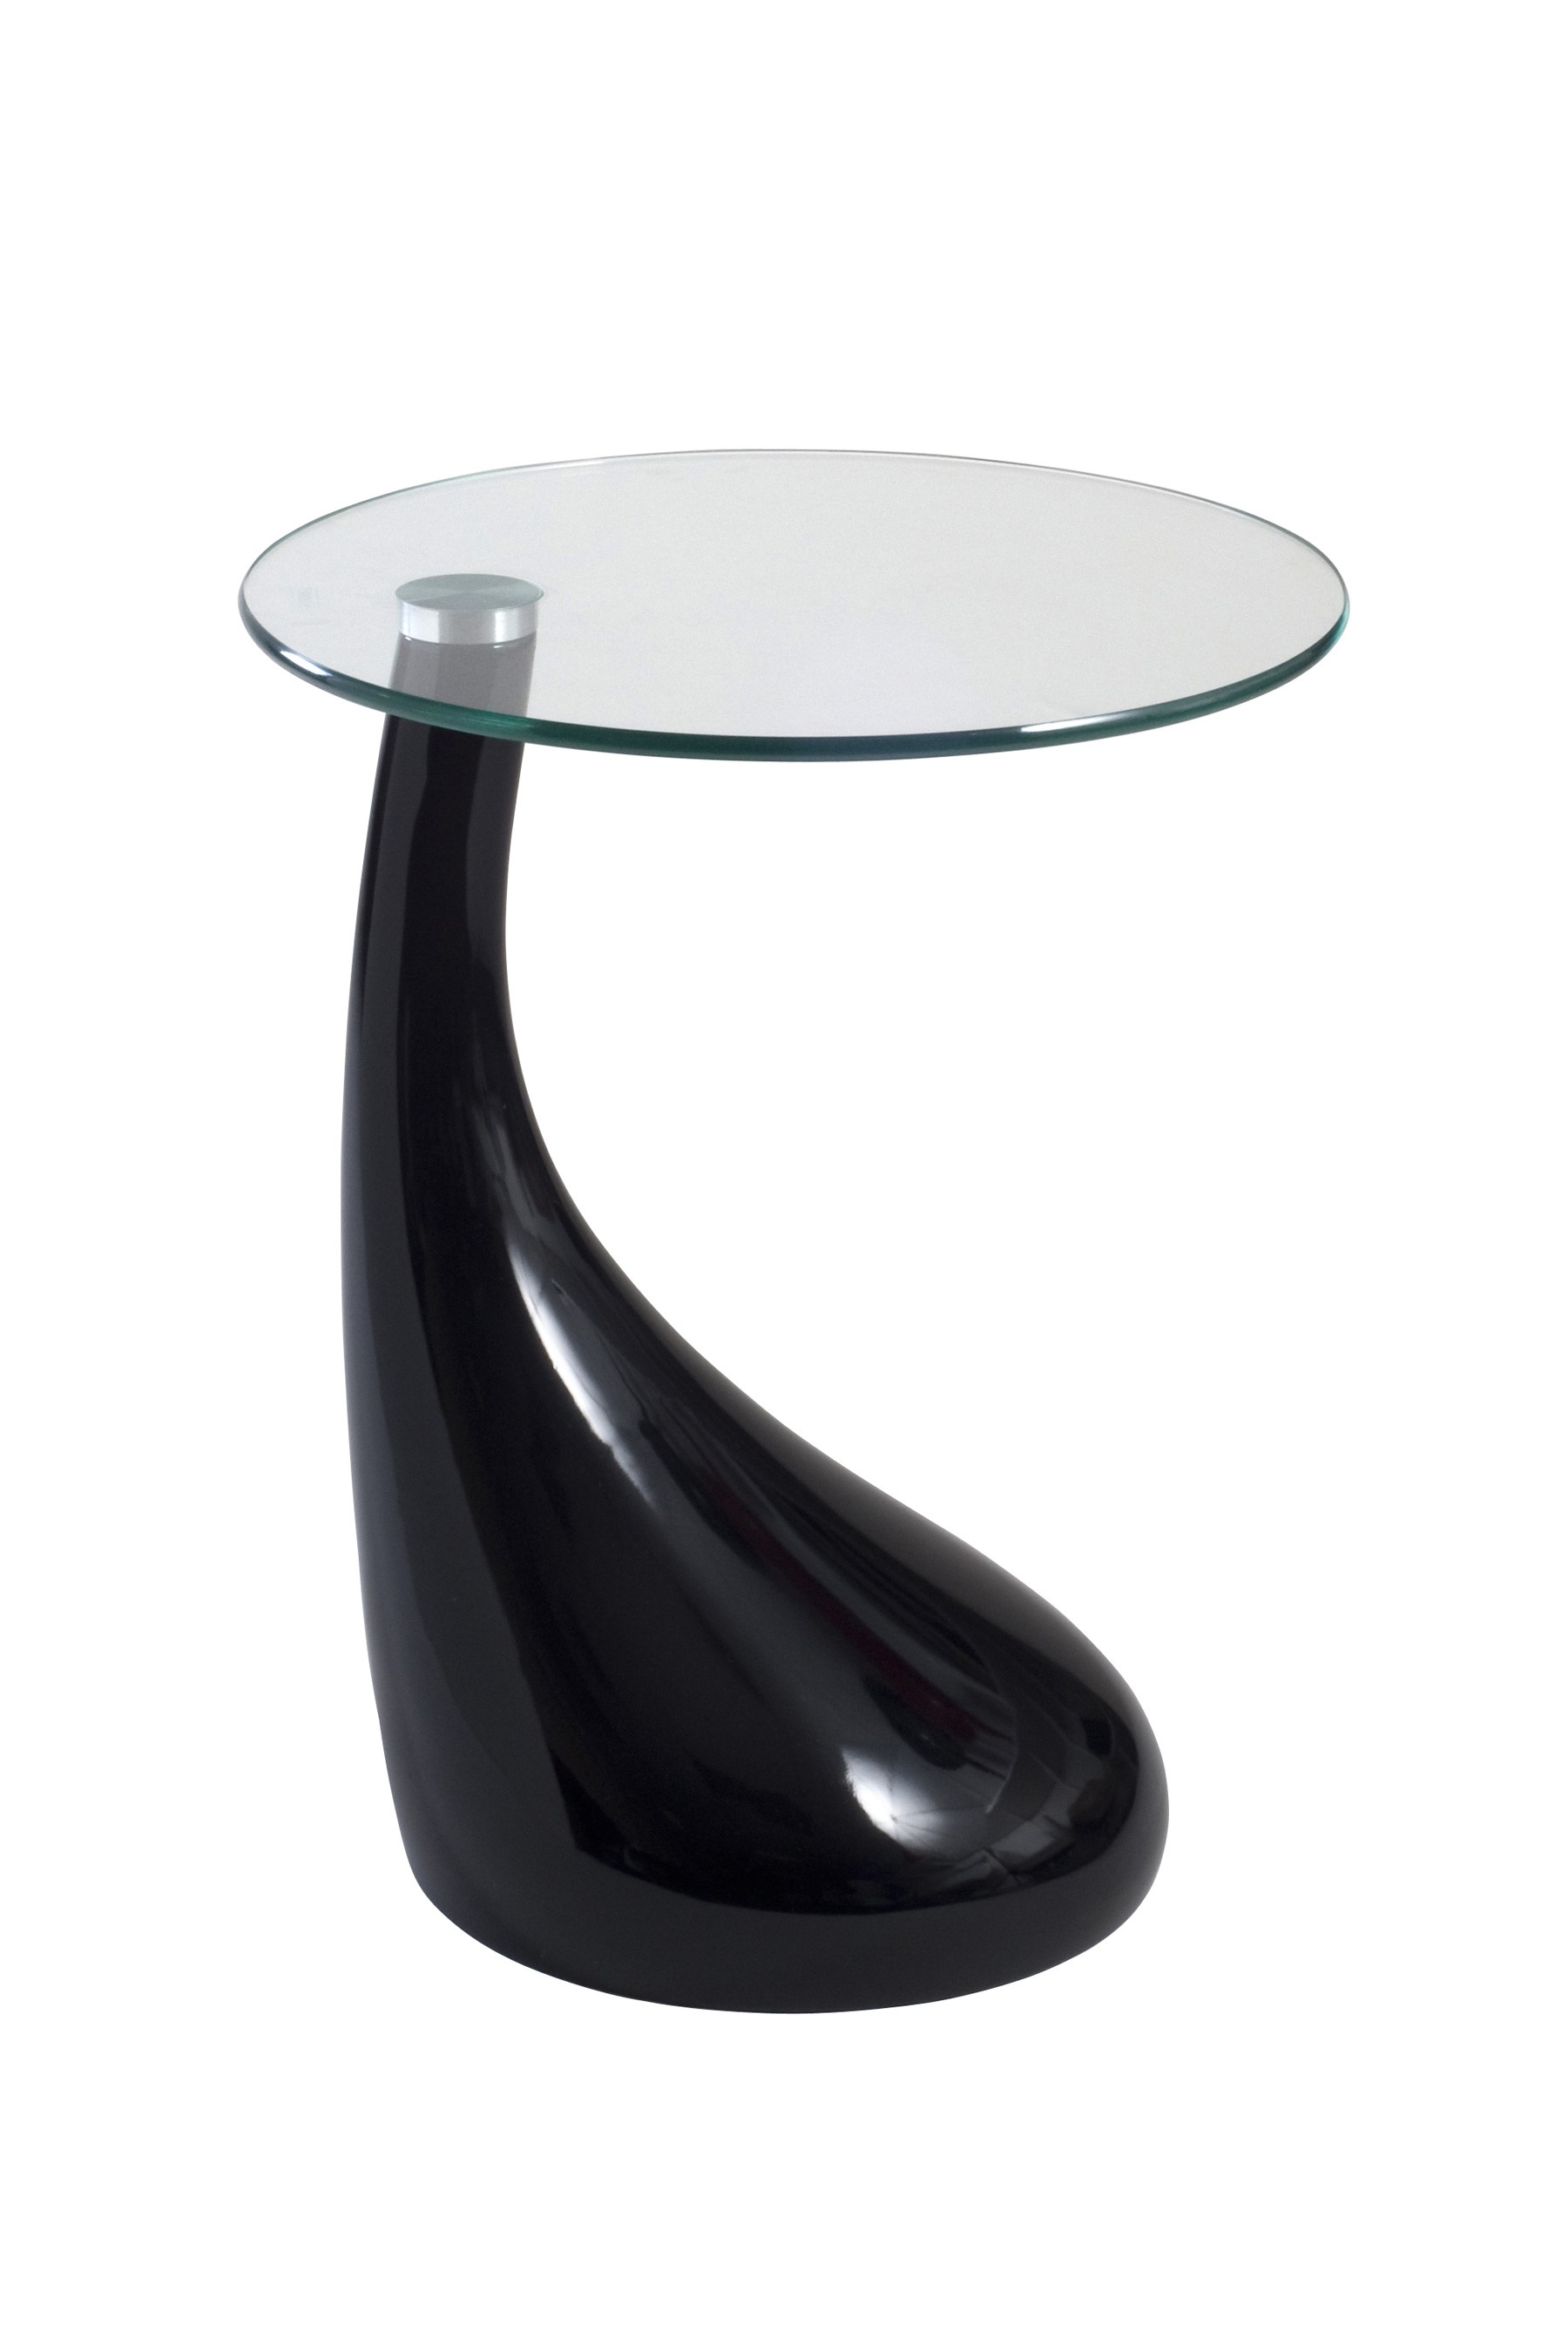 creative small black accent table with square side best round glass curving acrylic pedestal base umbrella tablecloth teak cocktail brown lamp nautical globe lights outdoor patio